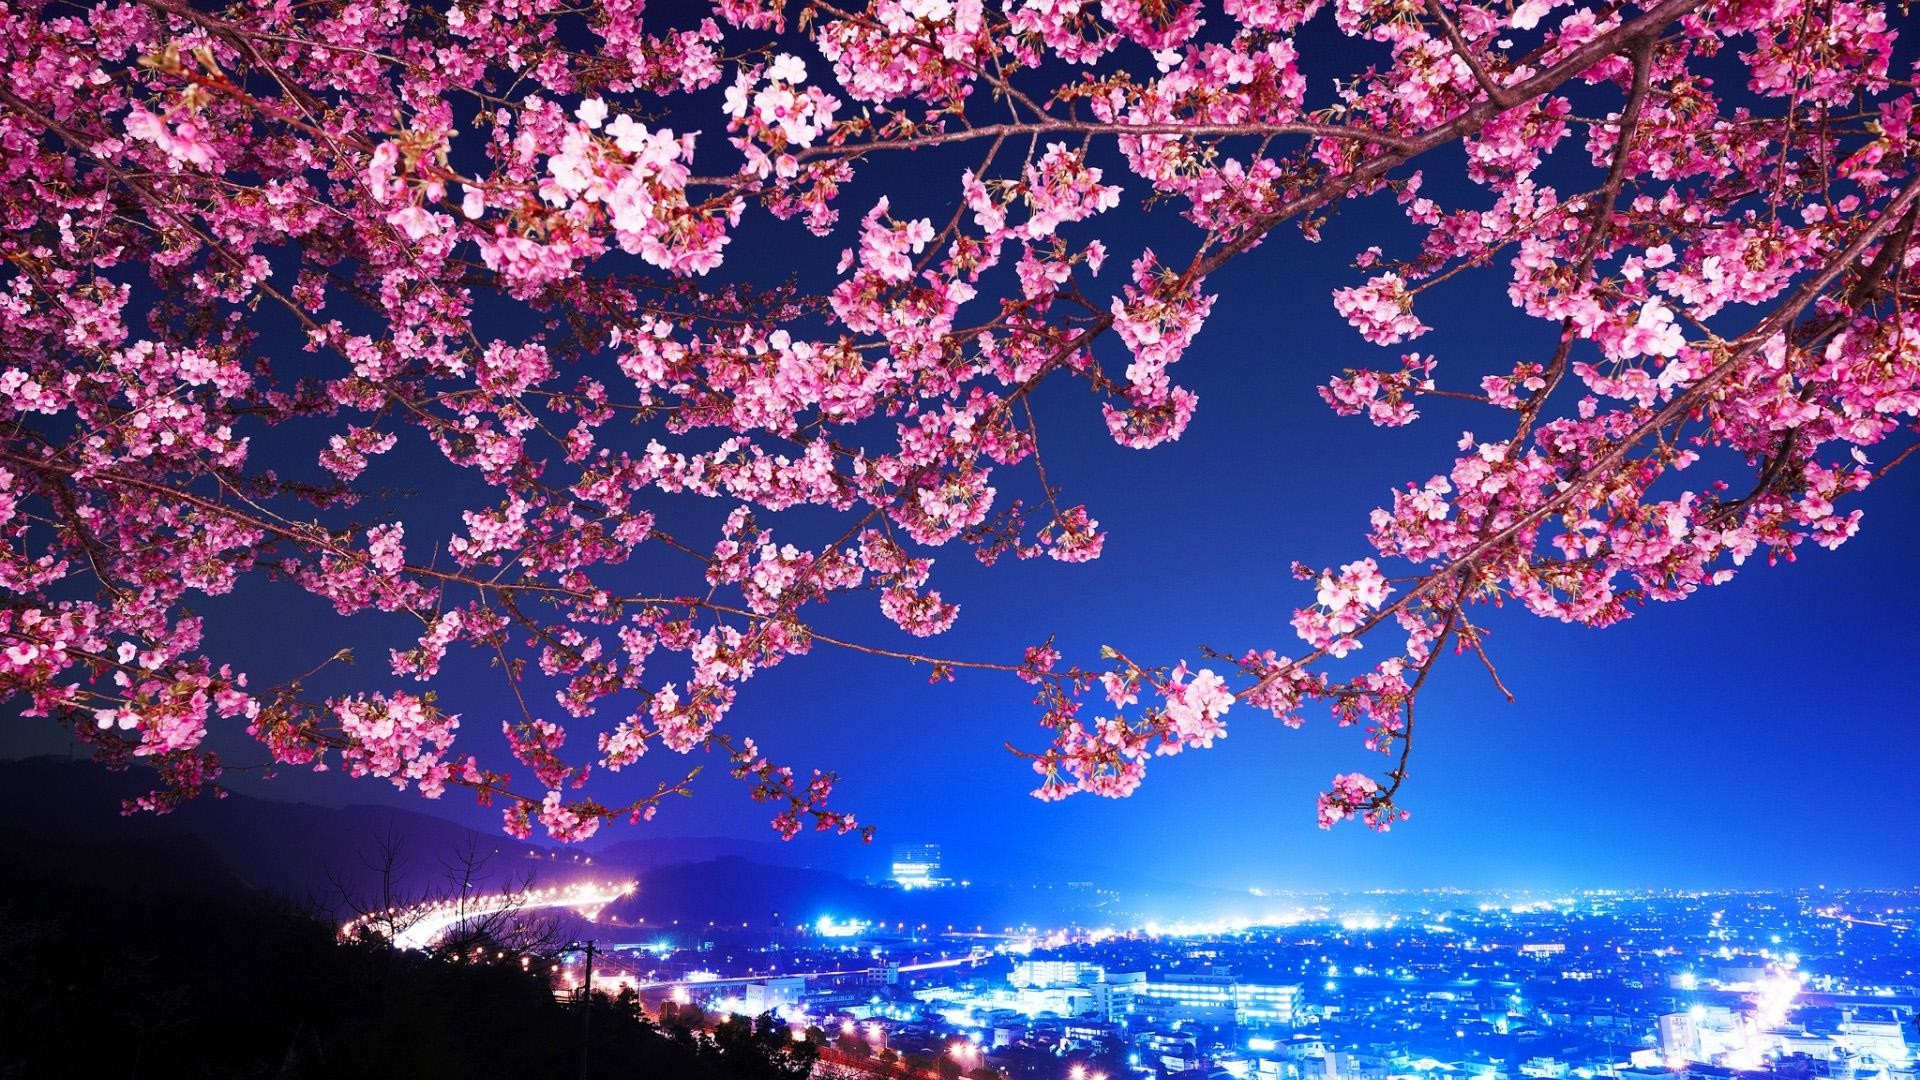 Res: 1920x1080, Amazing Japan Scenery Desktop Background.